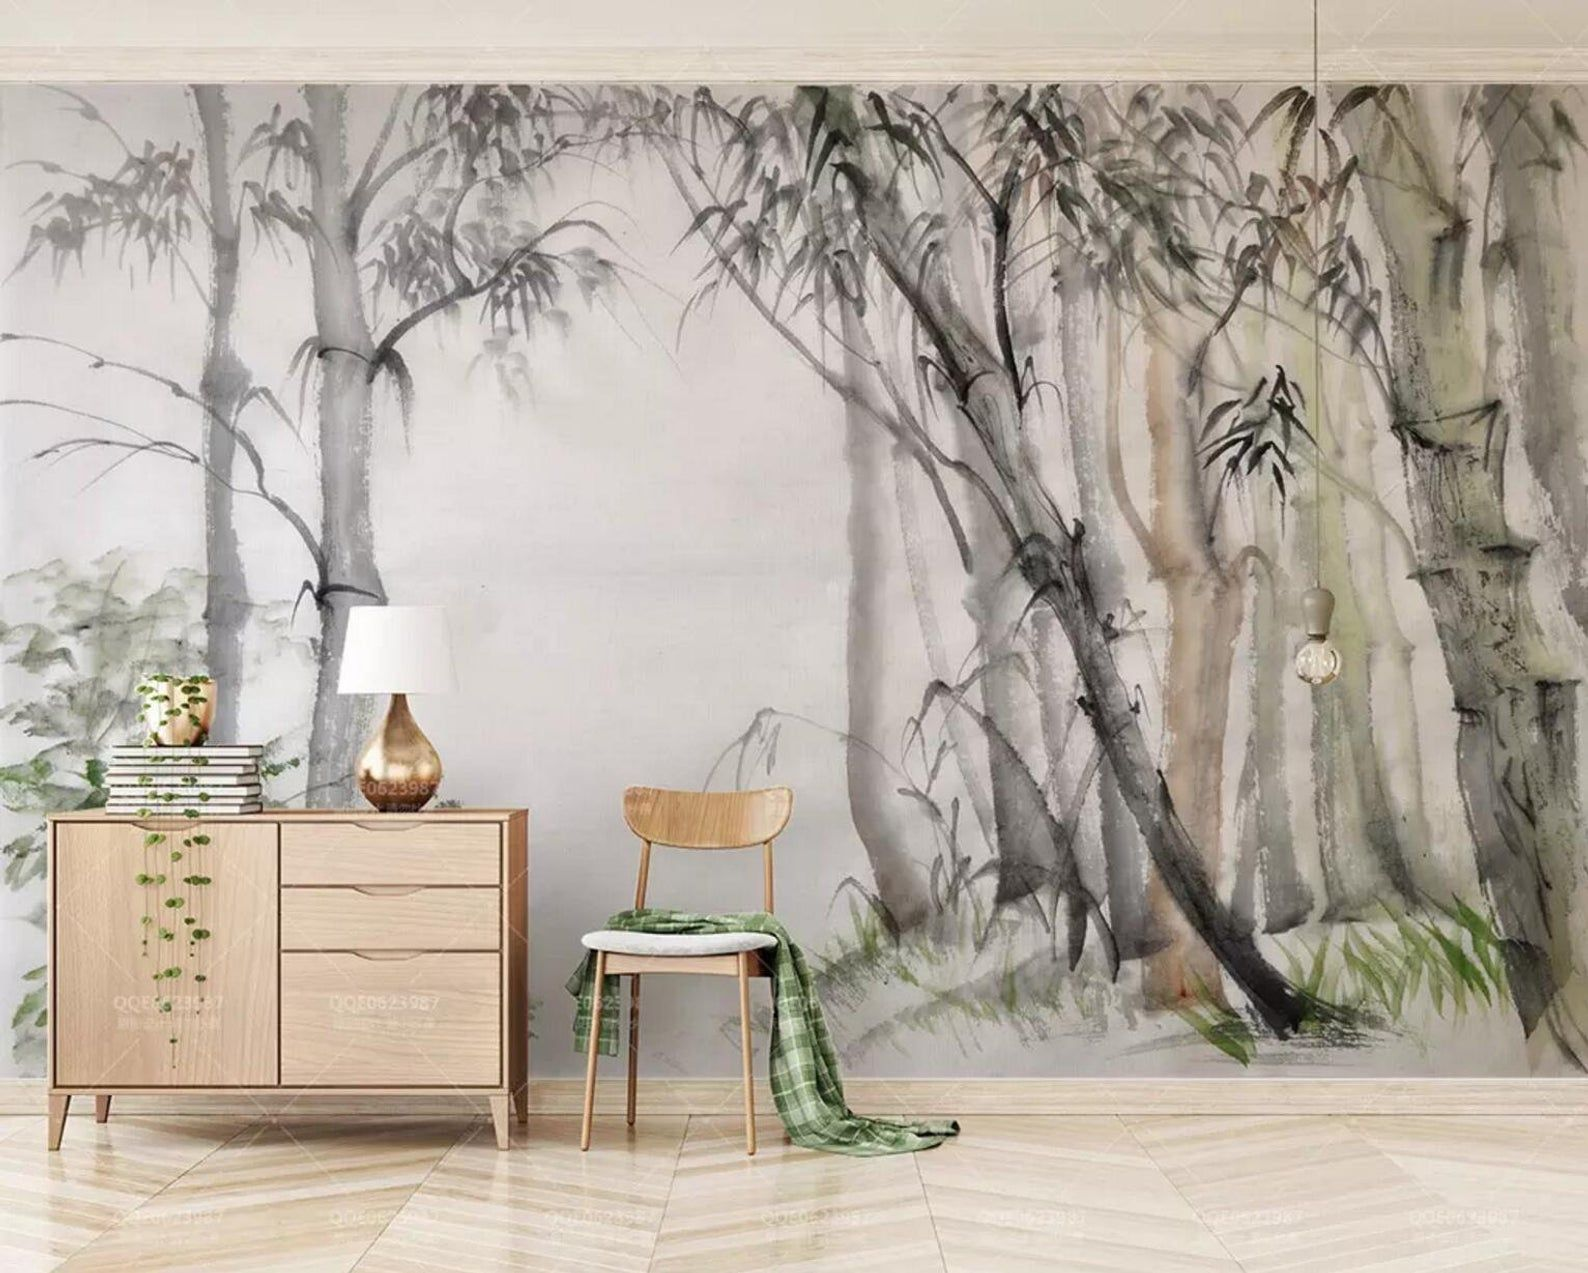 3d Chinese Painting Bamboo Forest Wallpaper Removable Self Adhesive Wallpaper Wall Mural Vintage Art Peel And Stick Forest Wallpaper Mural Wallpaper Forest Wall Mural